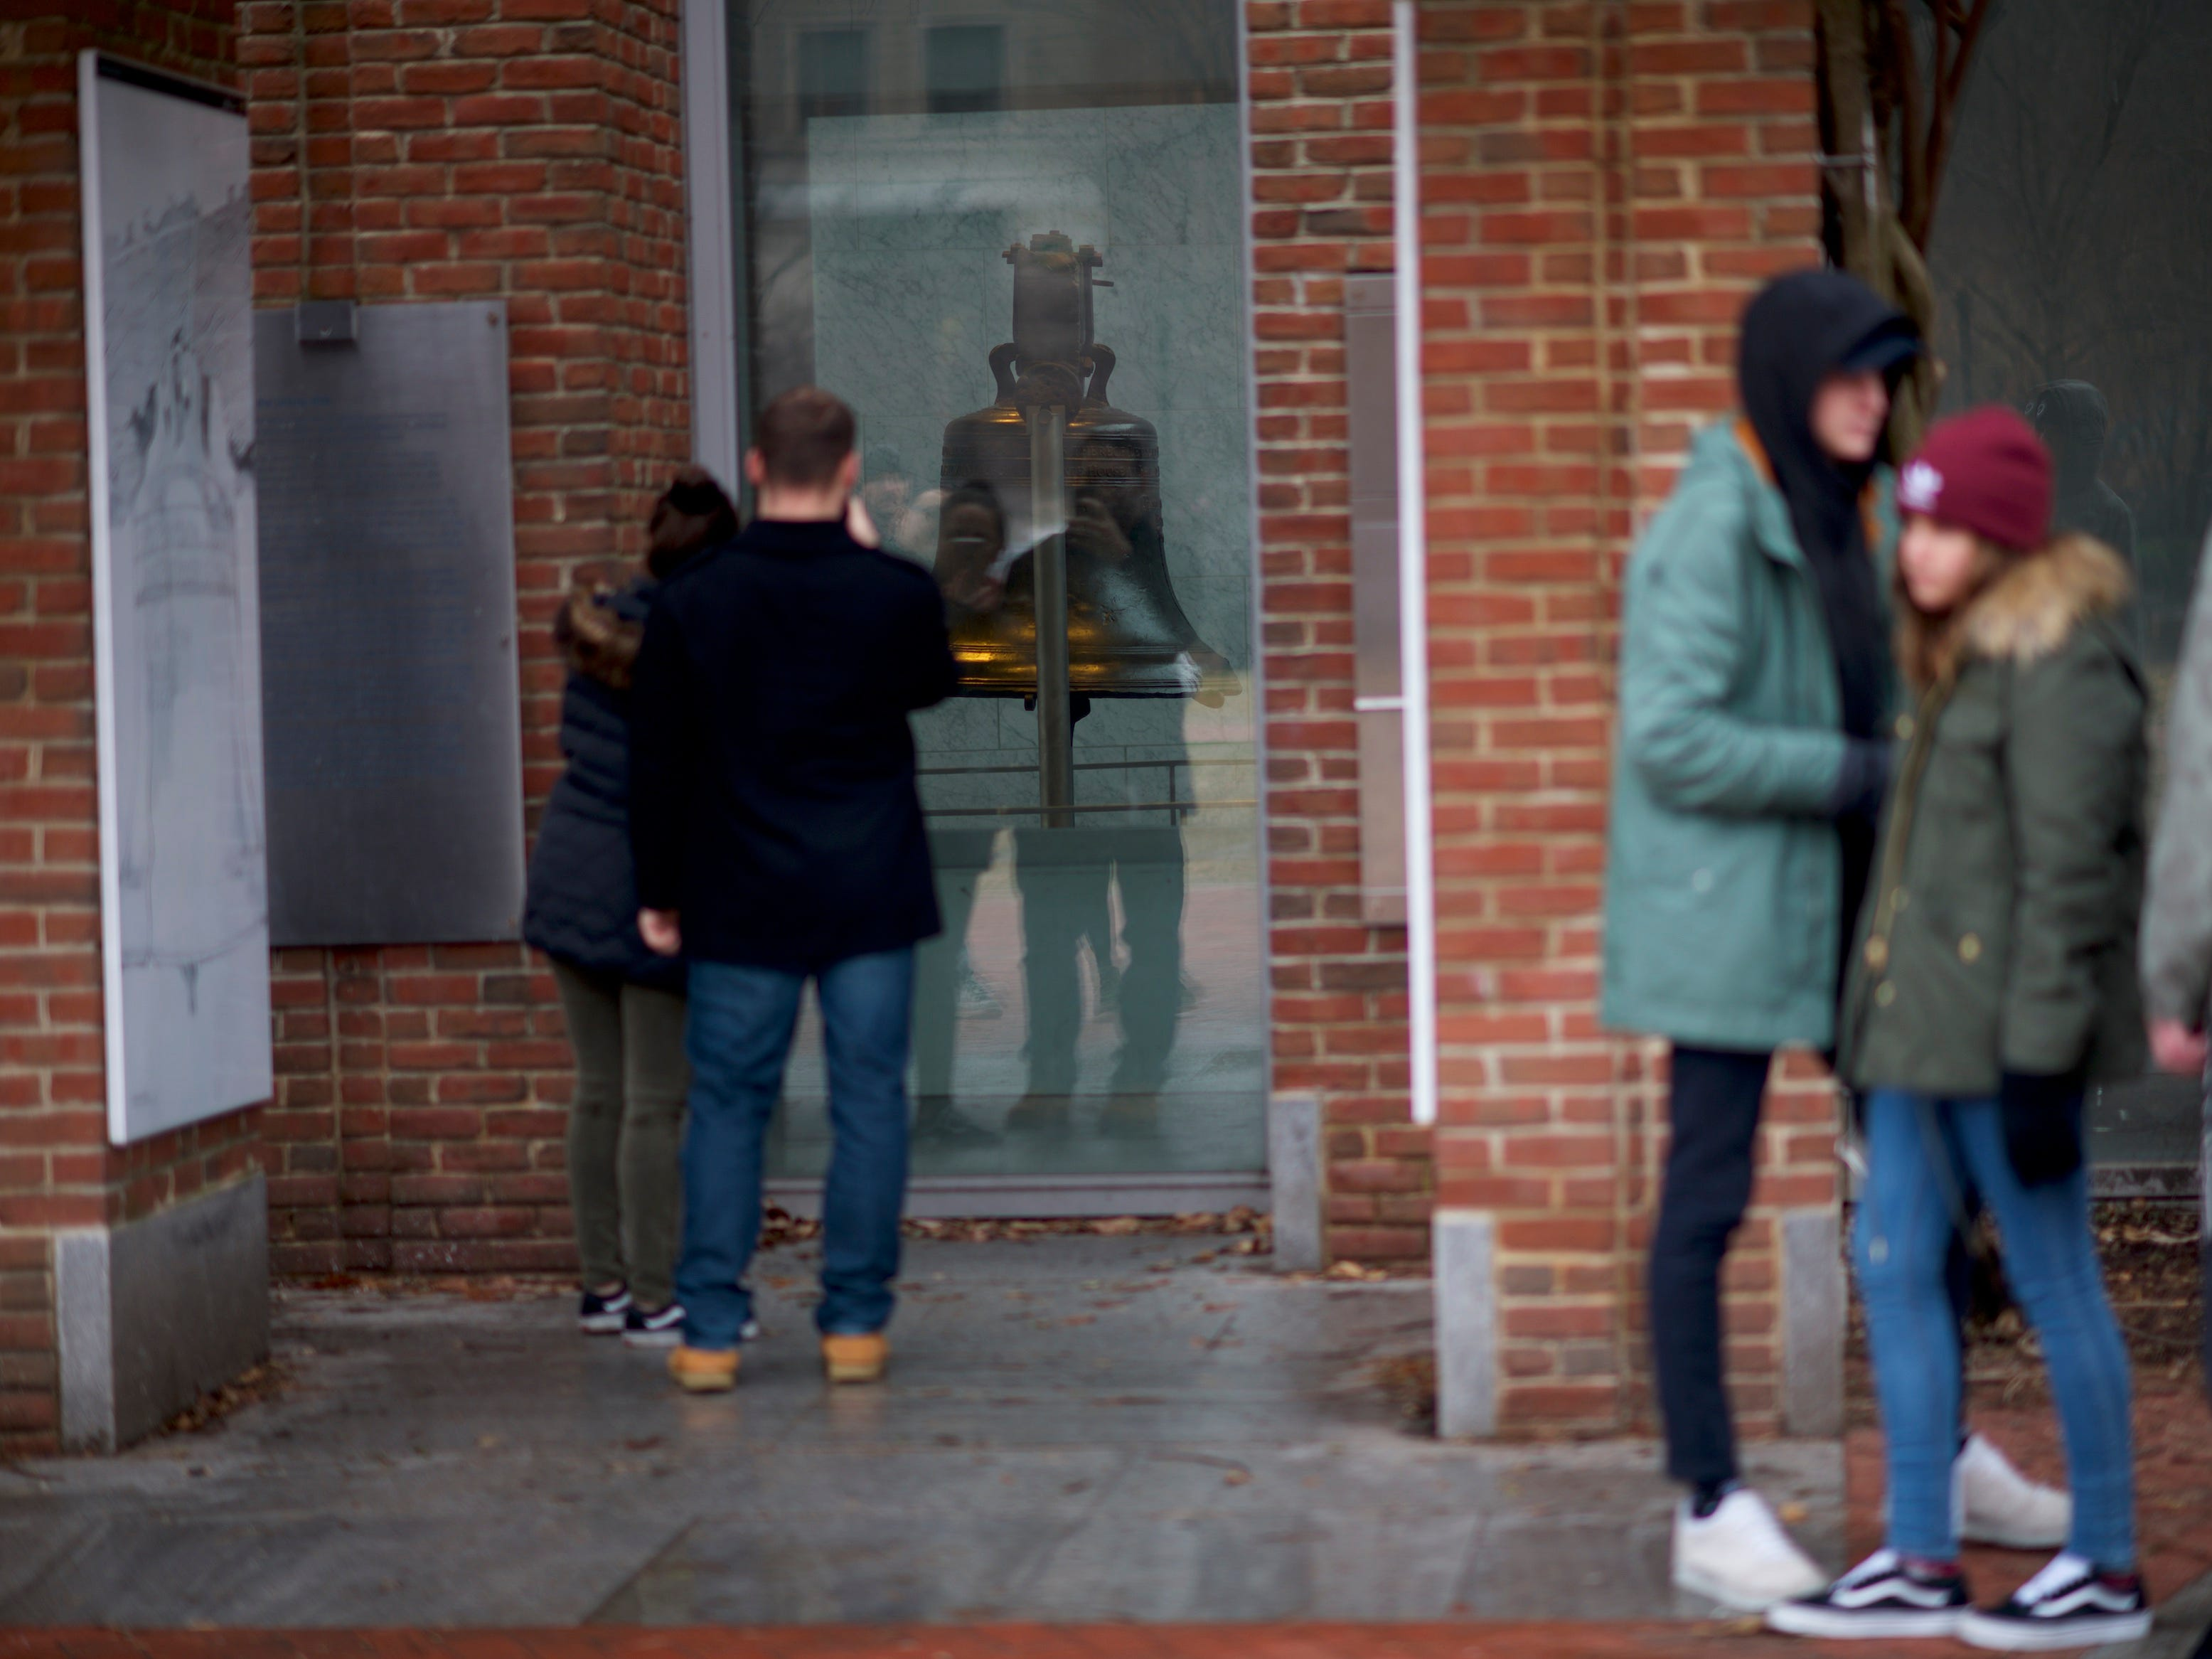 PHILADELPHIA, PA - JANUARY 08:  Tourists photograph the Liberty Bell, unable to go inside due to a lapse in federal appropriations on January 8, 2019 in Philadelphia, Pennsylvania.  Furloughed federal workers and area elected officials held a protest rally beside it on Independence Mall.  The government shutdown, now lasting 18 days, marks the second longest United States in history, affecting about 800,000 federal employees.  (Photo by Mark Makela/Getty Images) ORG XMIT: 775278689 ORIG FILE ID: 1079379568